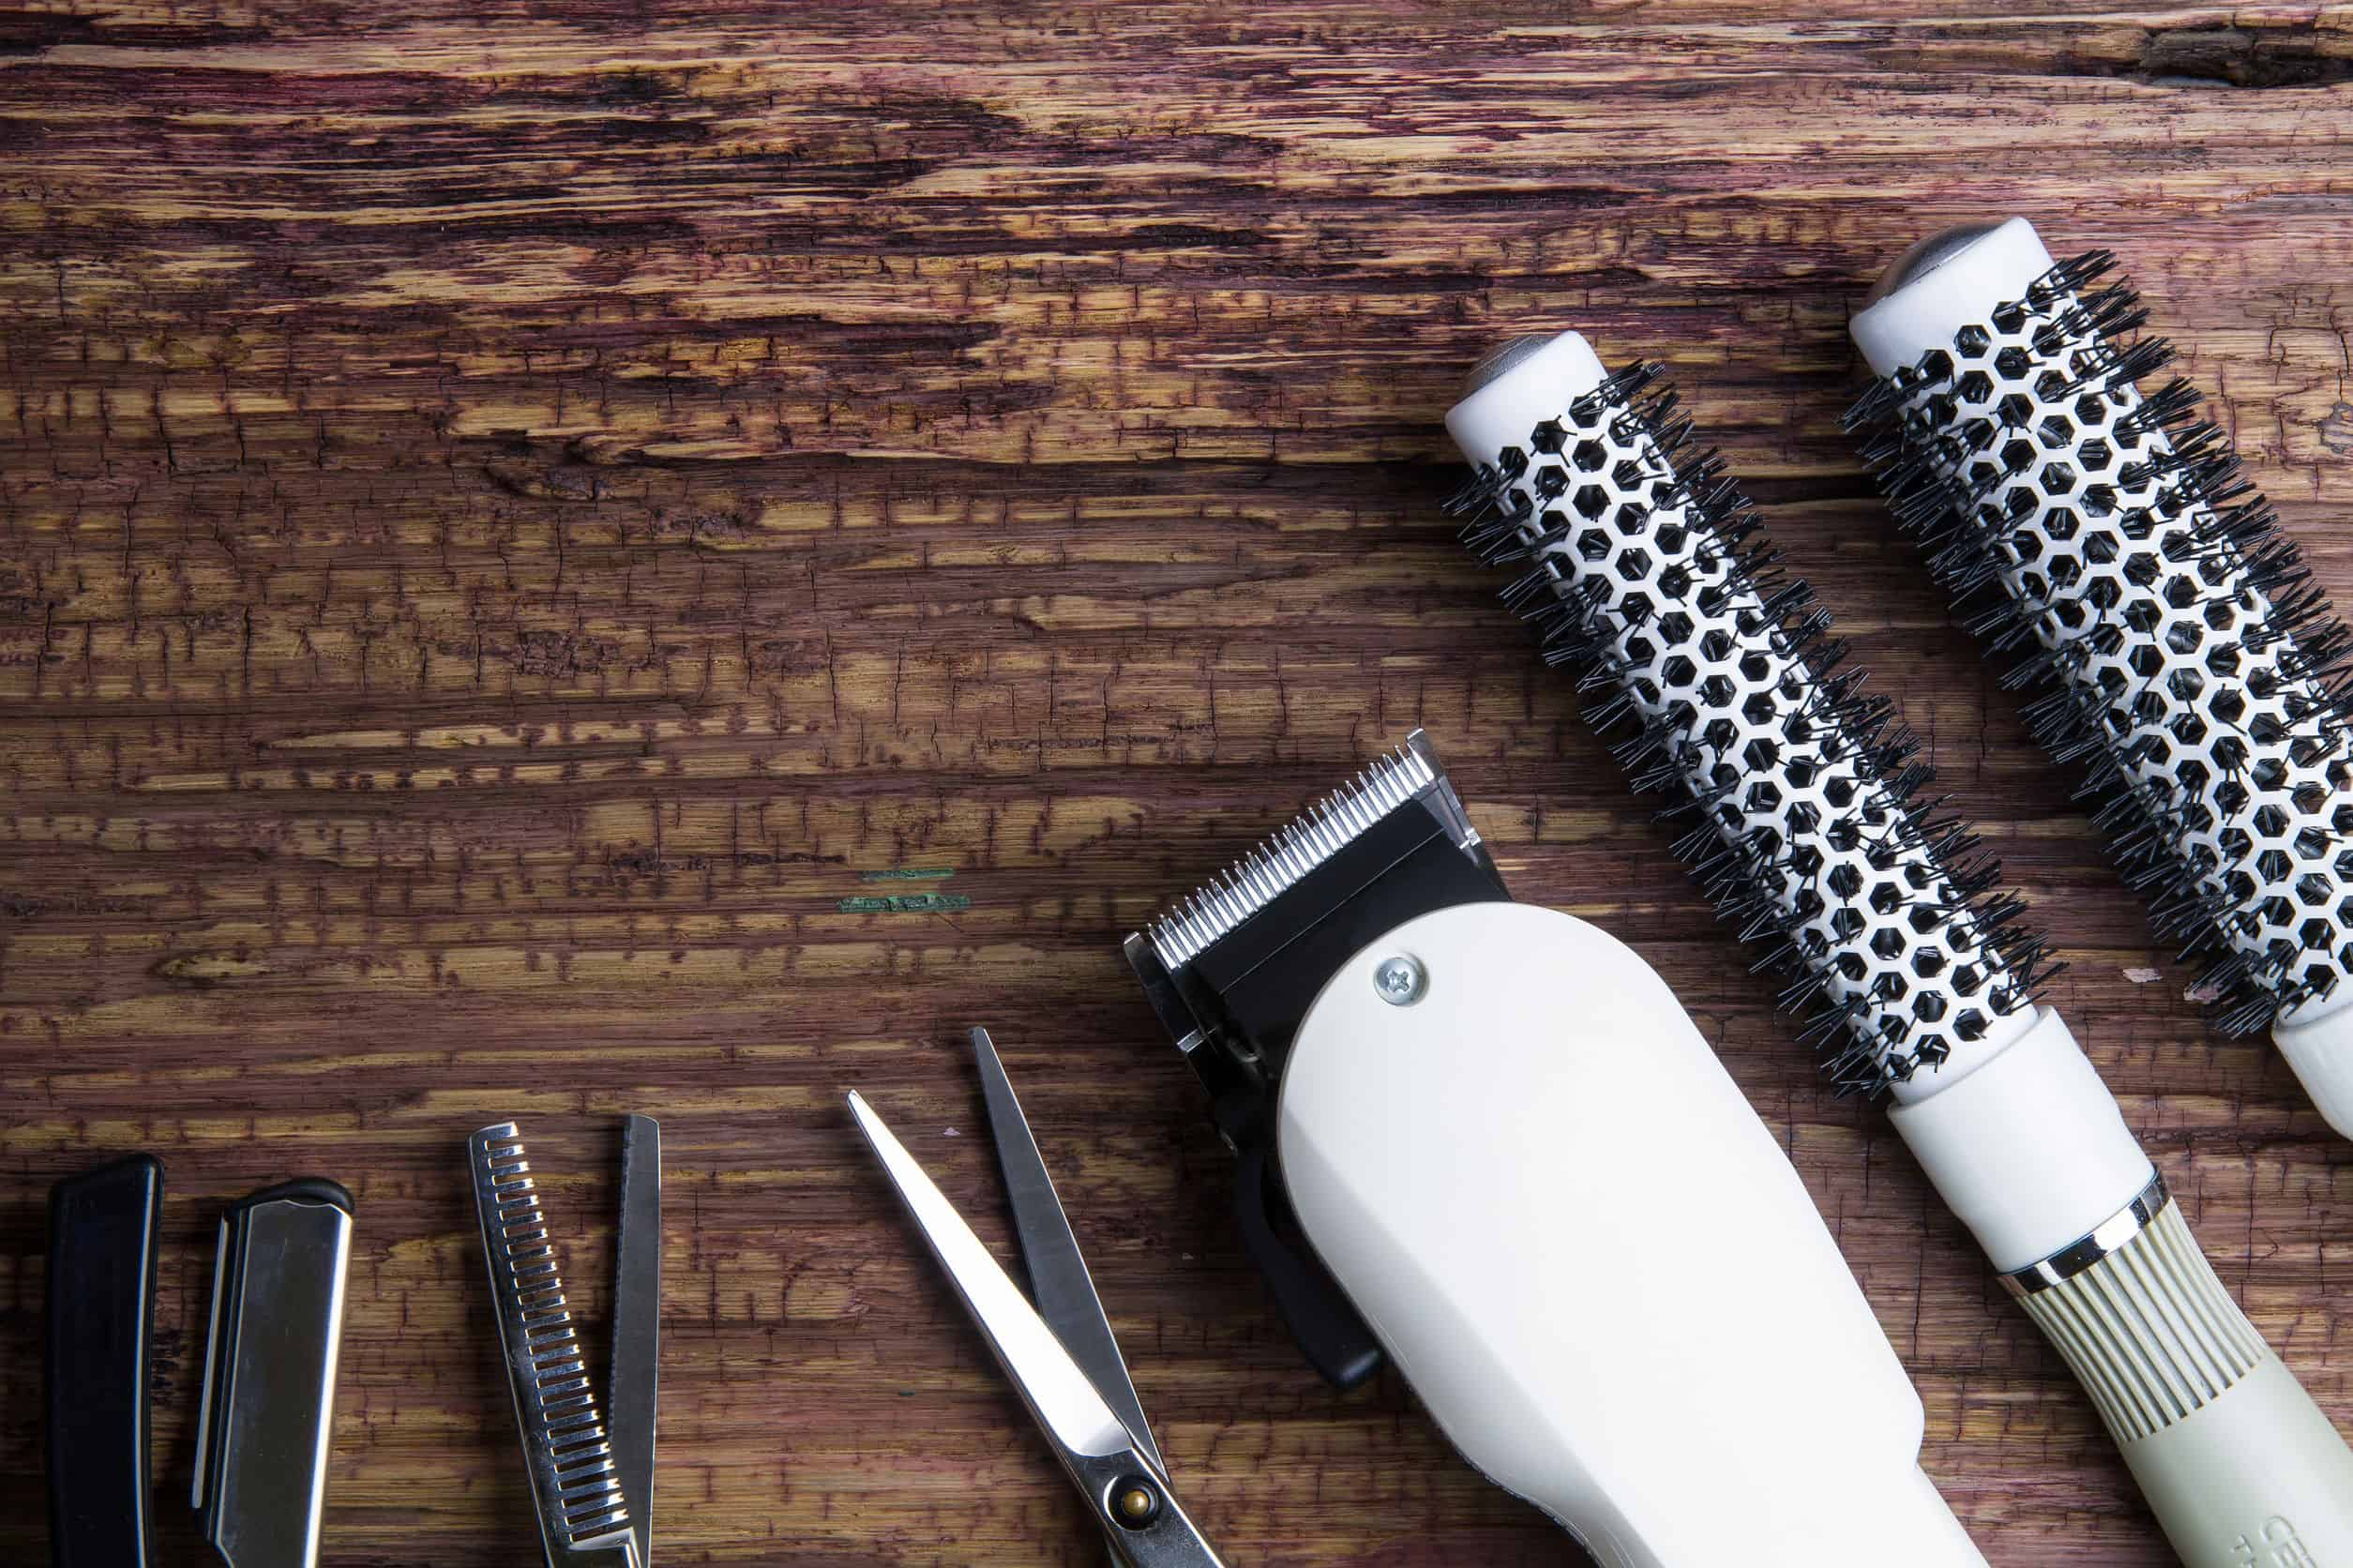 Stylish Professional Barber Clippers, Hair Clippers, Hair sciss